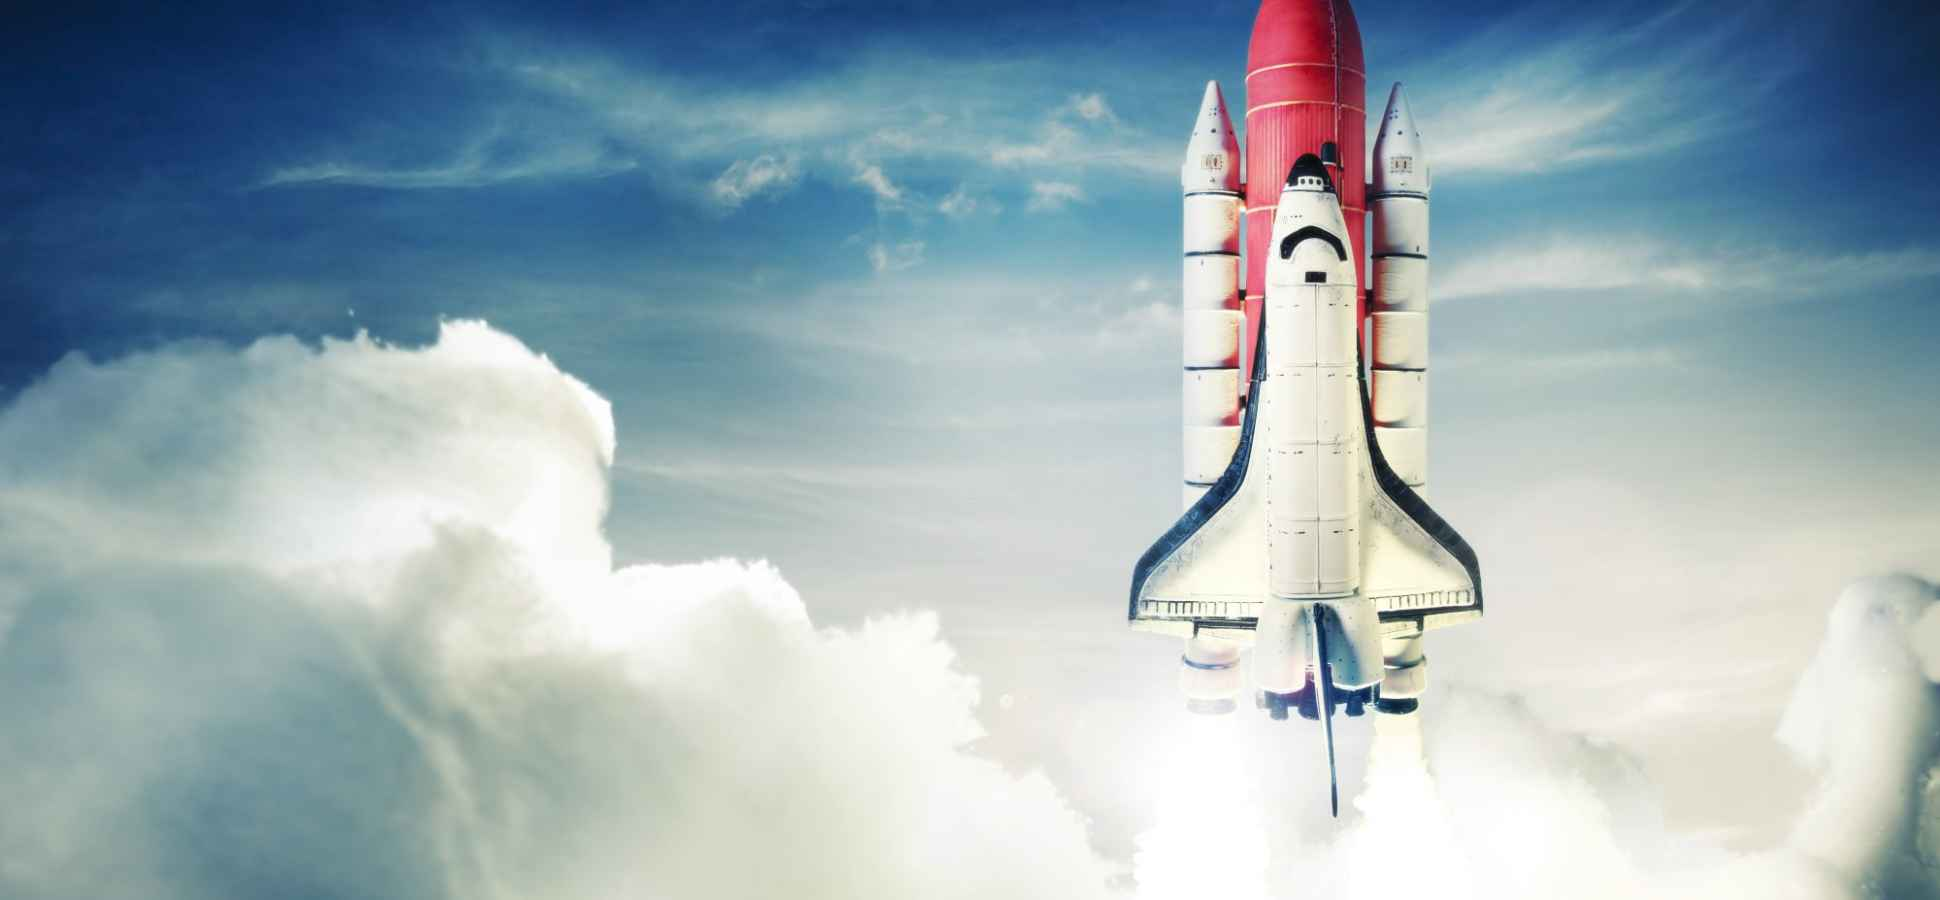 5 Secrets to Launching a Great Entrepreneurial Product (While You're Still Employed)